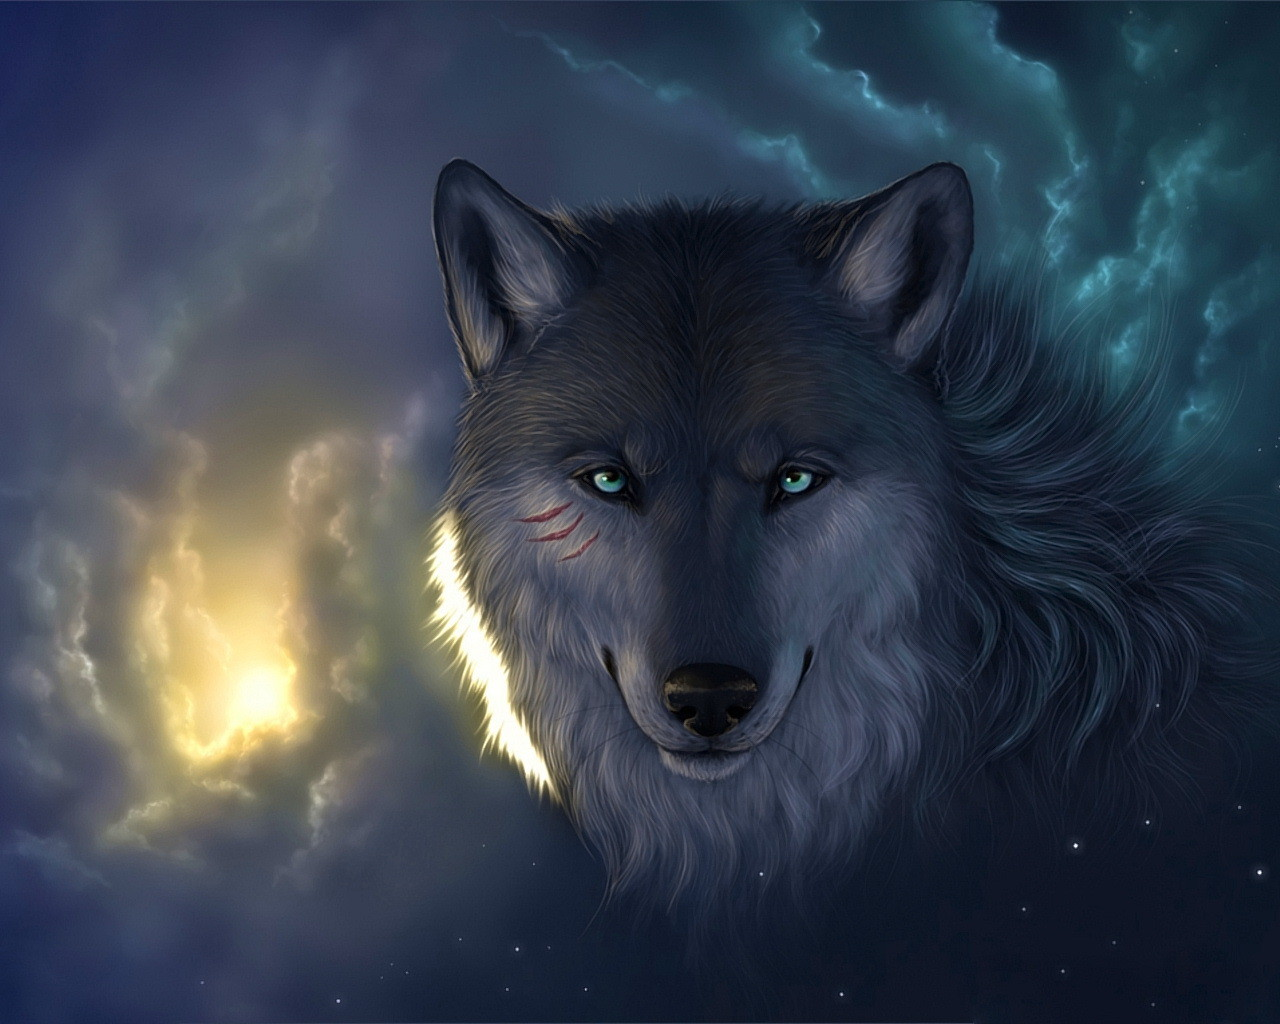 wallpaper loup fond - photo #8